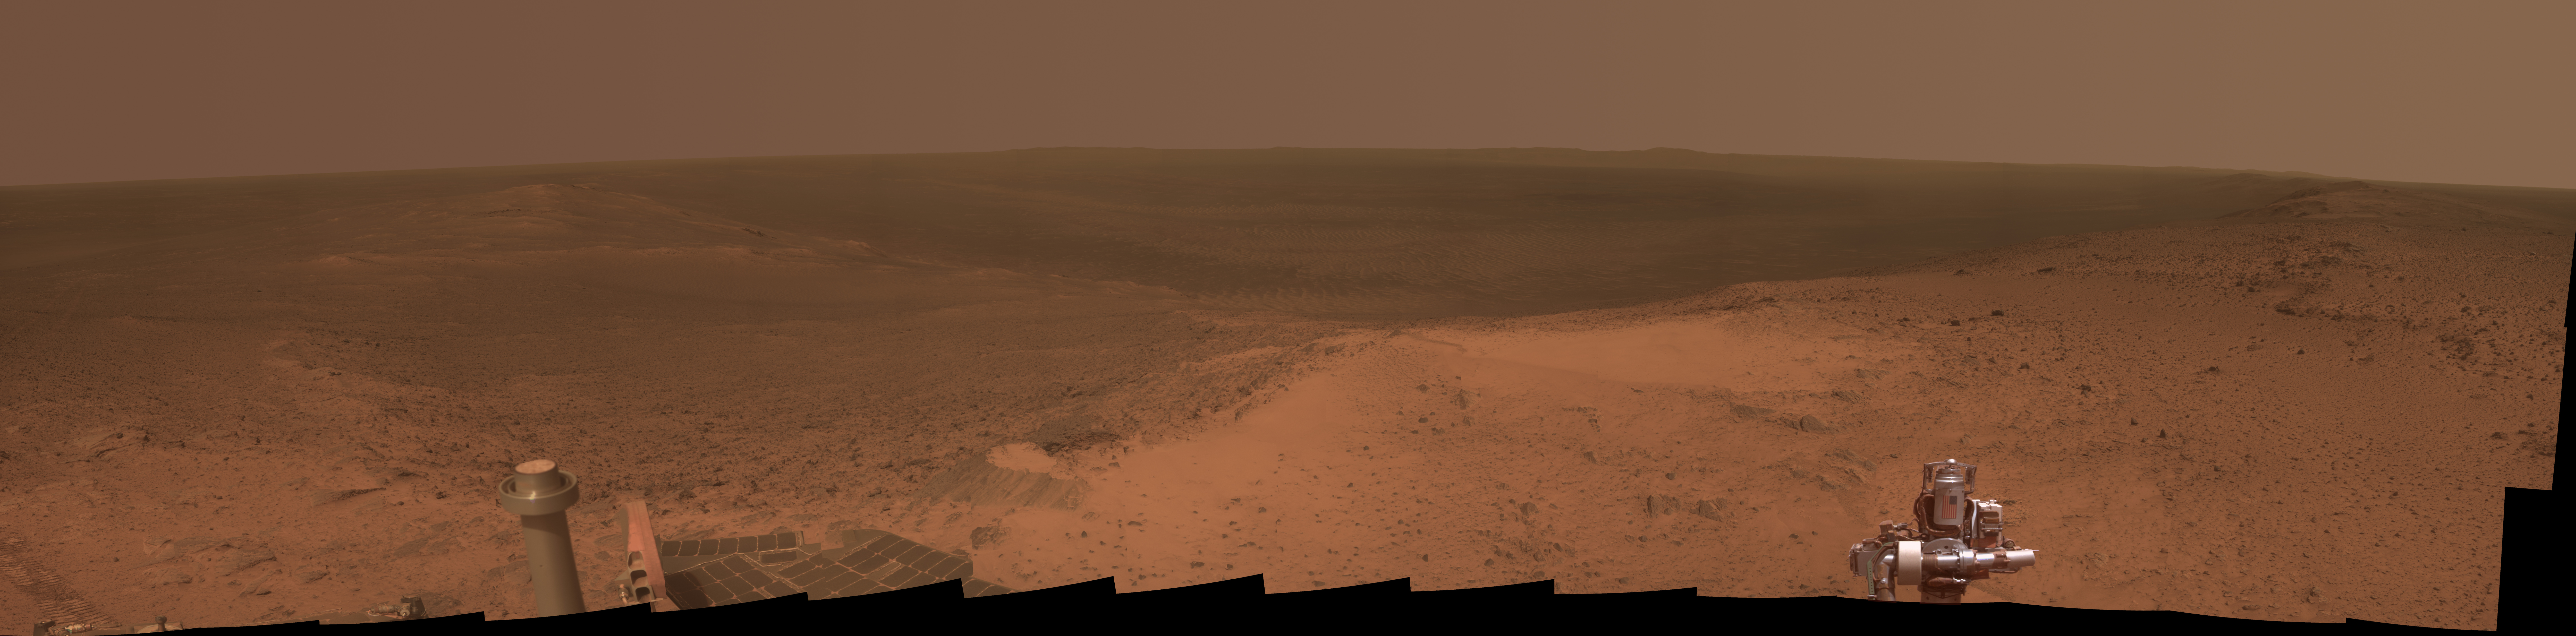 High Viewpoint For 11 Year Old Rover Mission On Mars Nasa